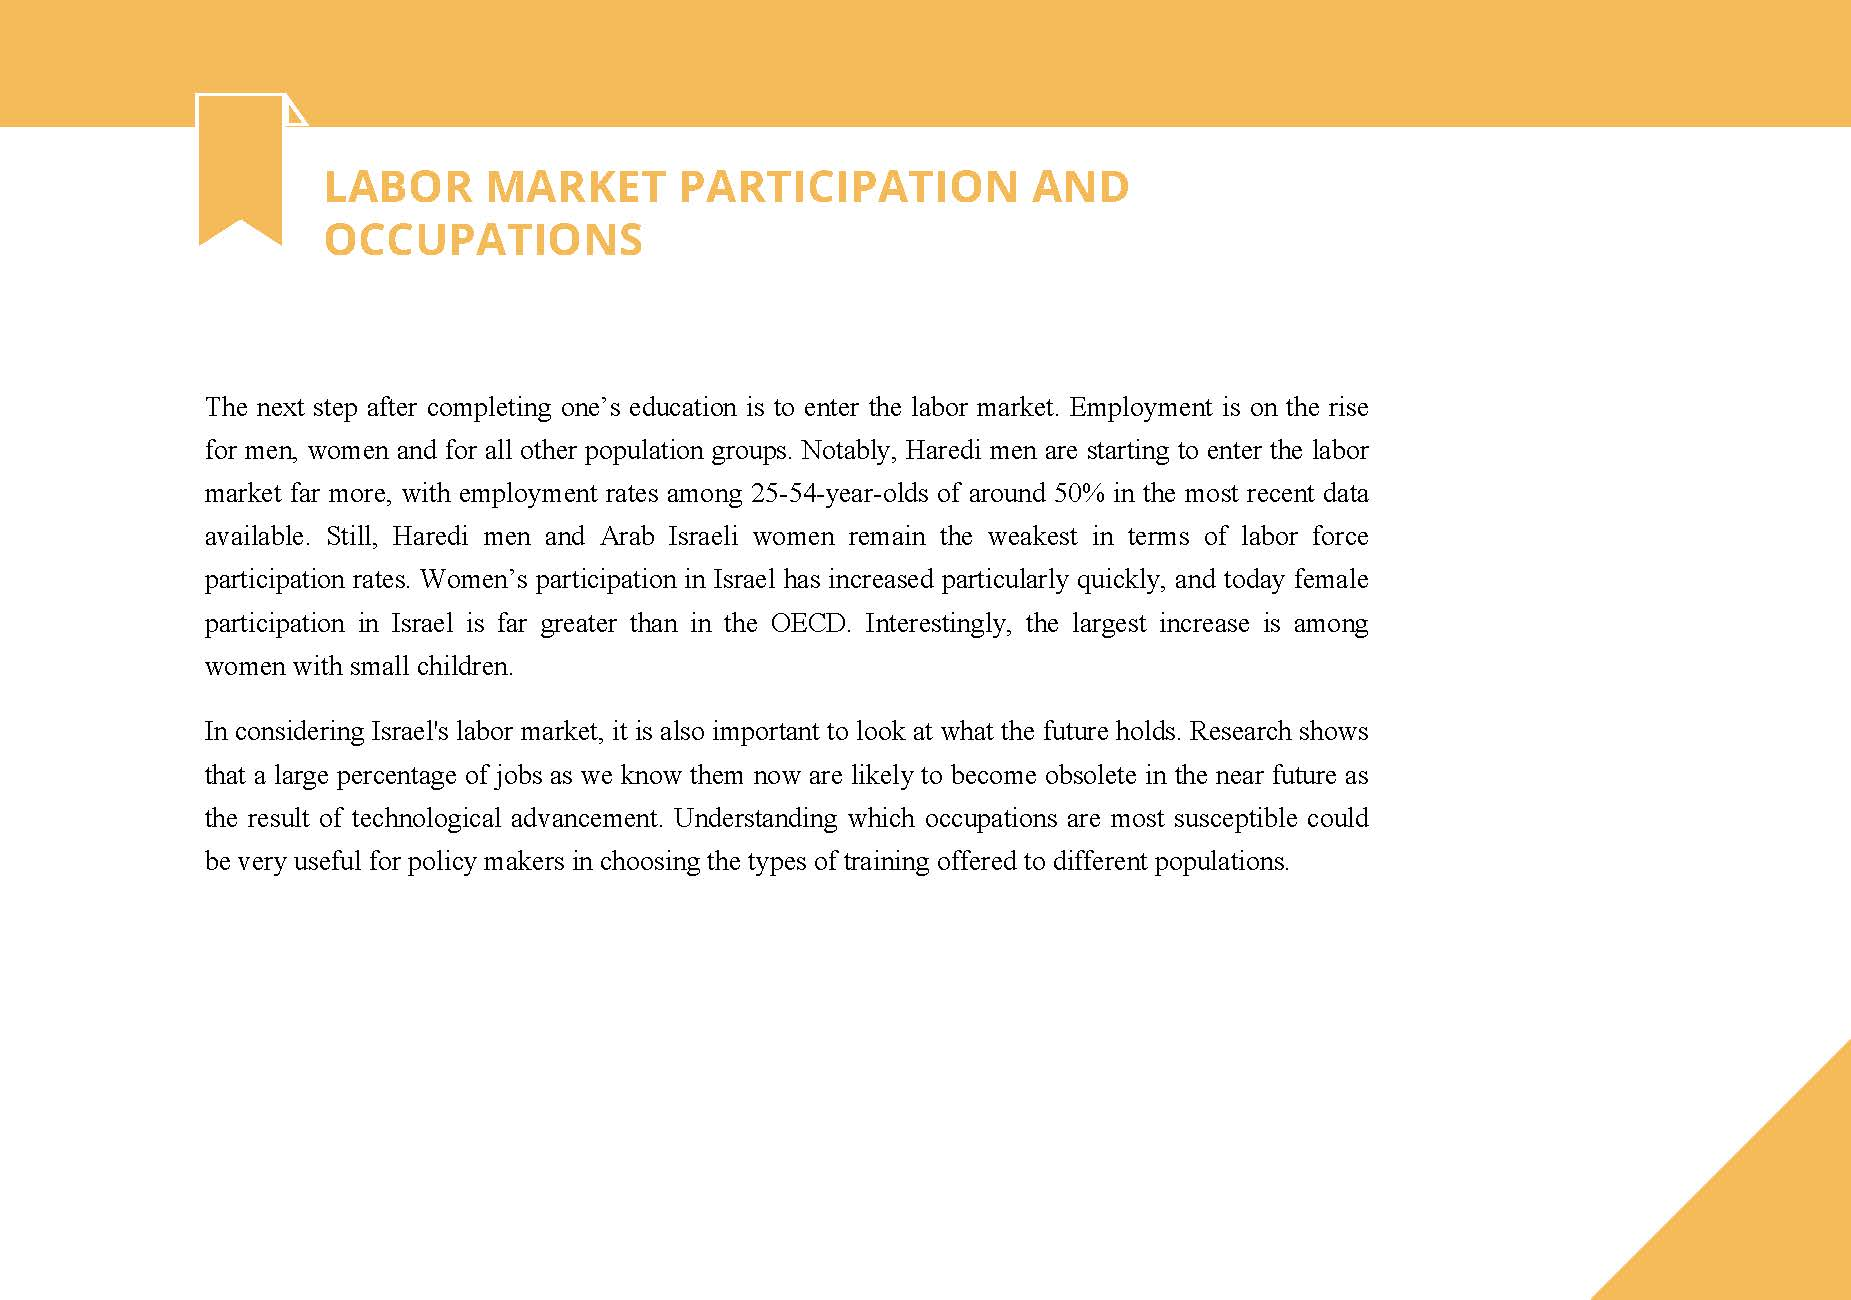 labor market participation and occupations in Israel Taub Center